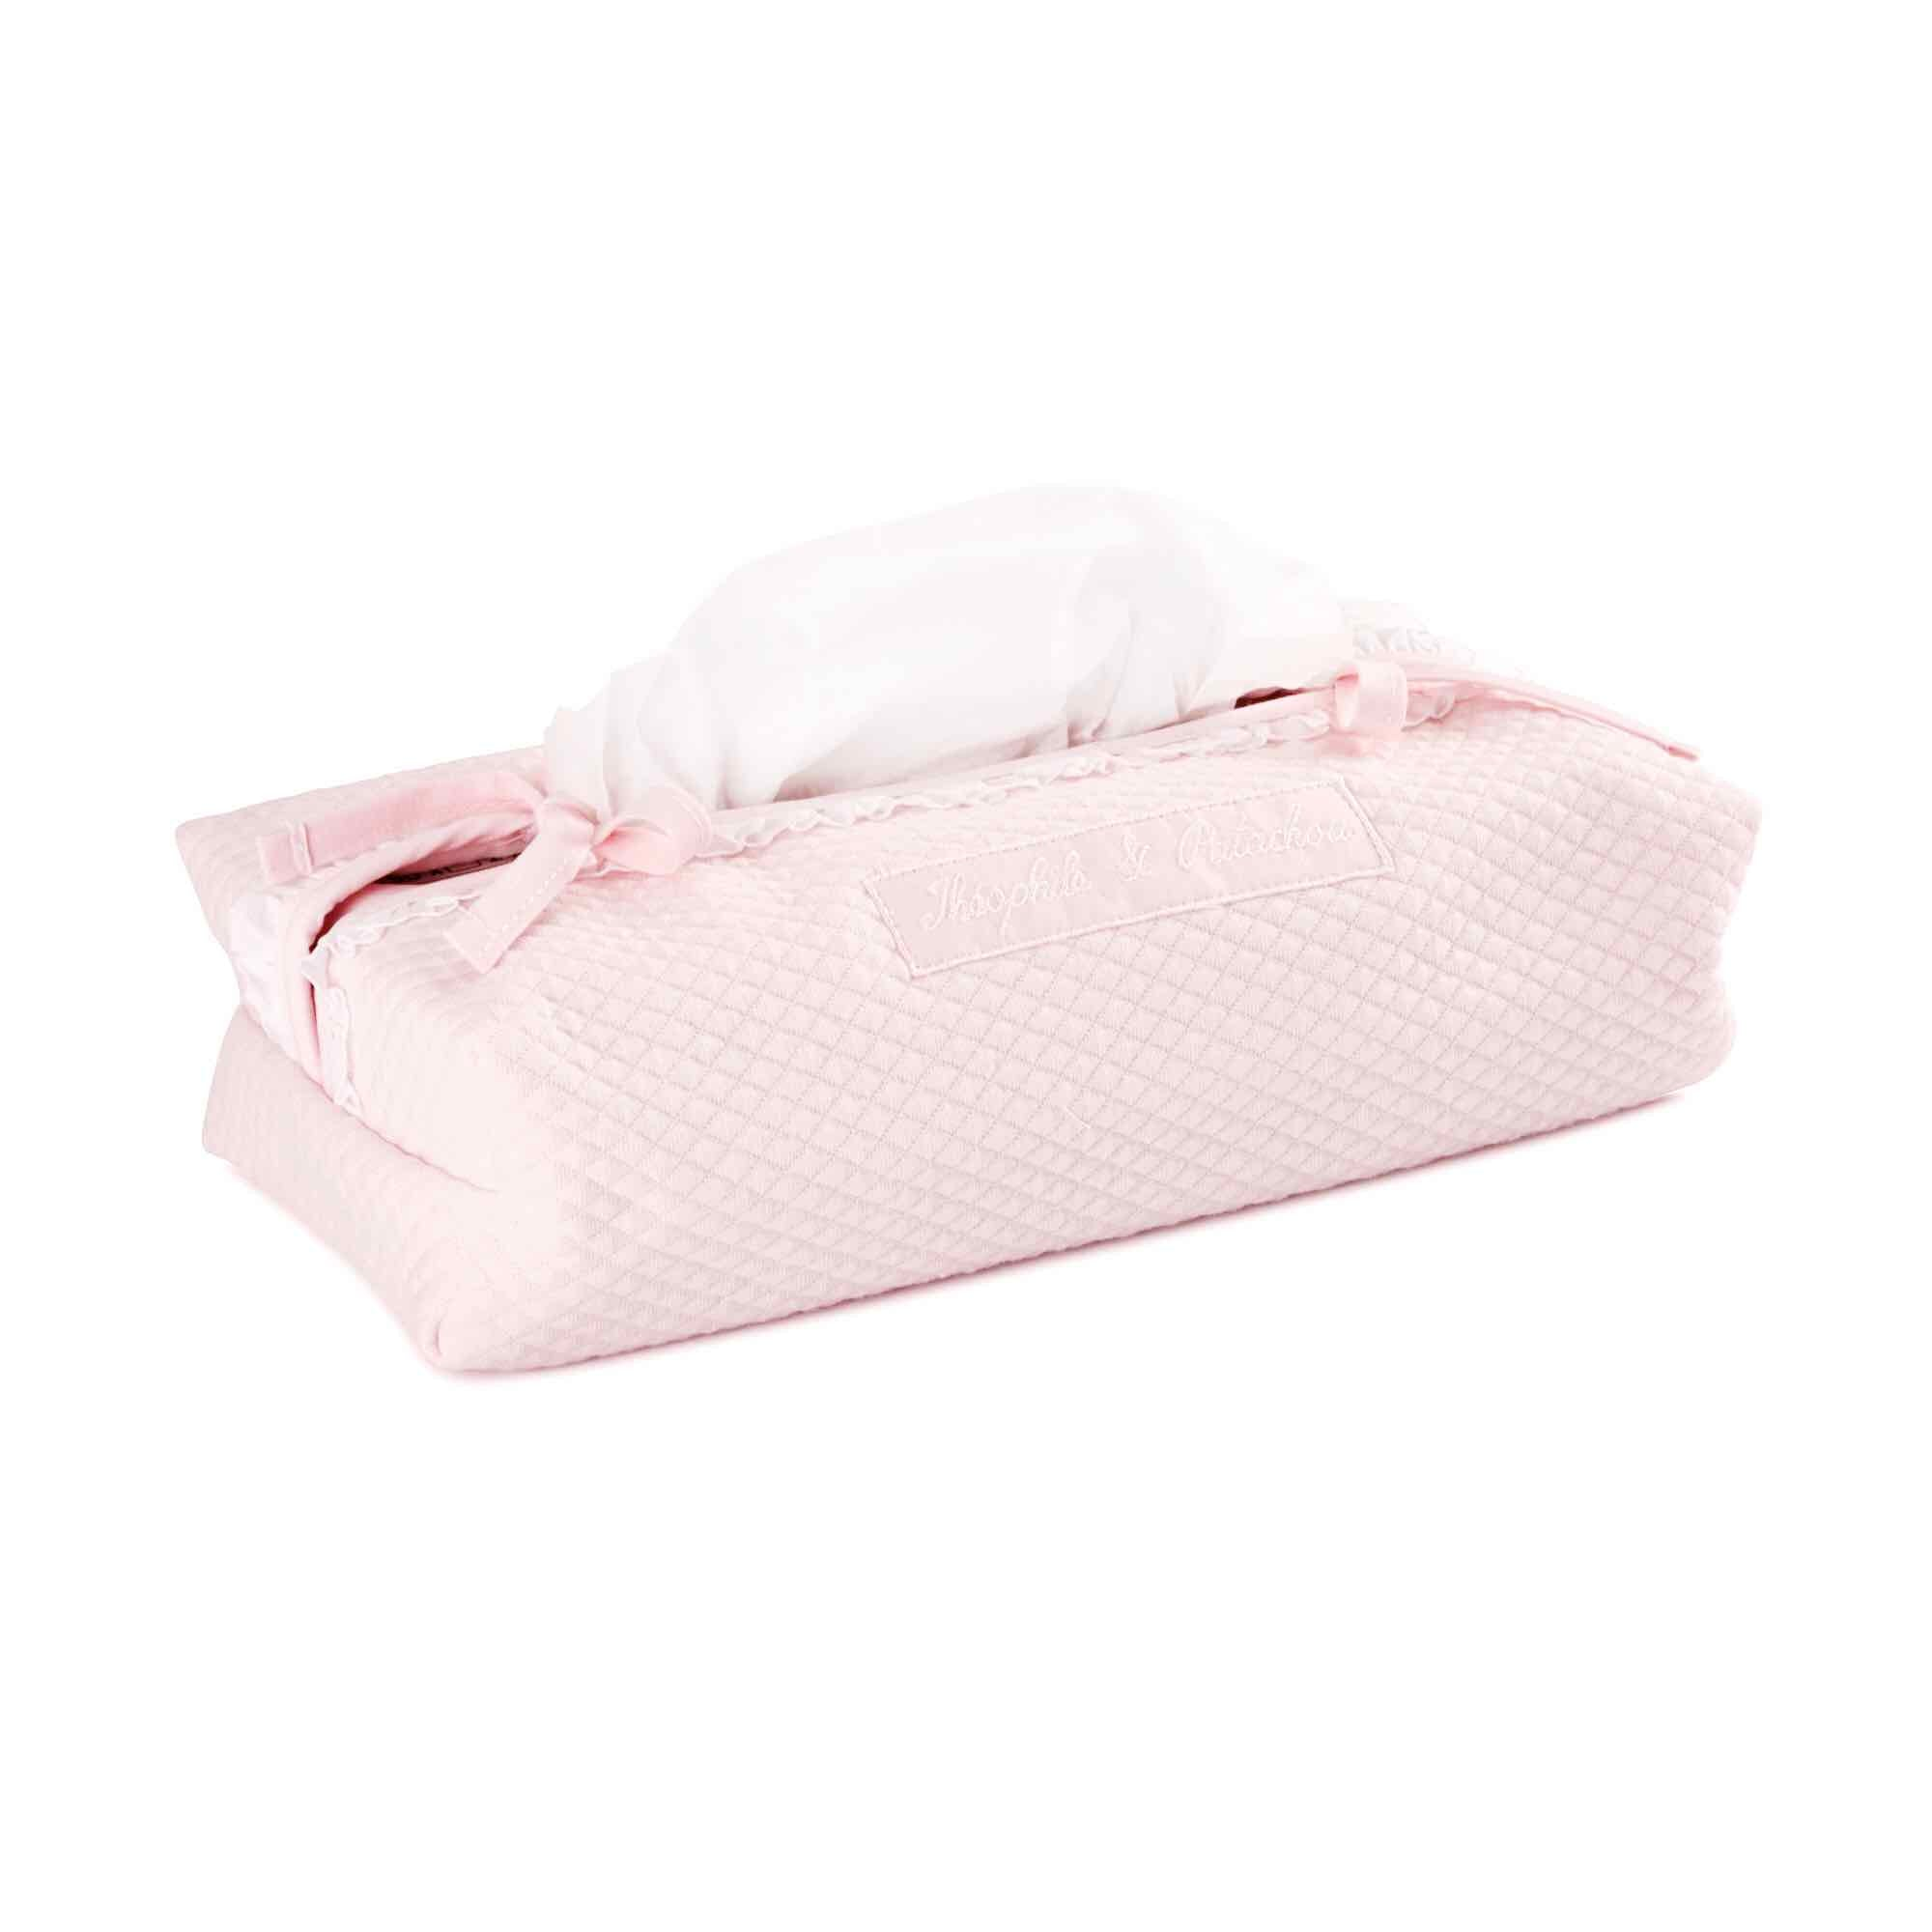 Theophile & Patachou Tissue Cover - Royal Pink